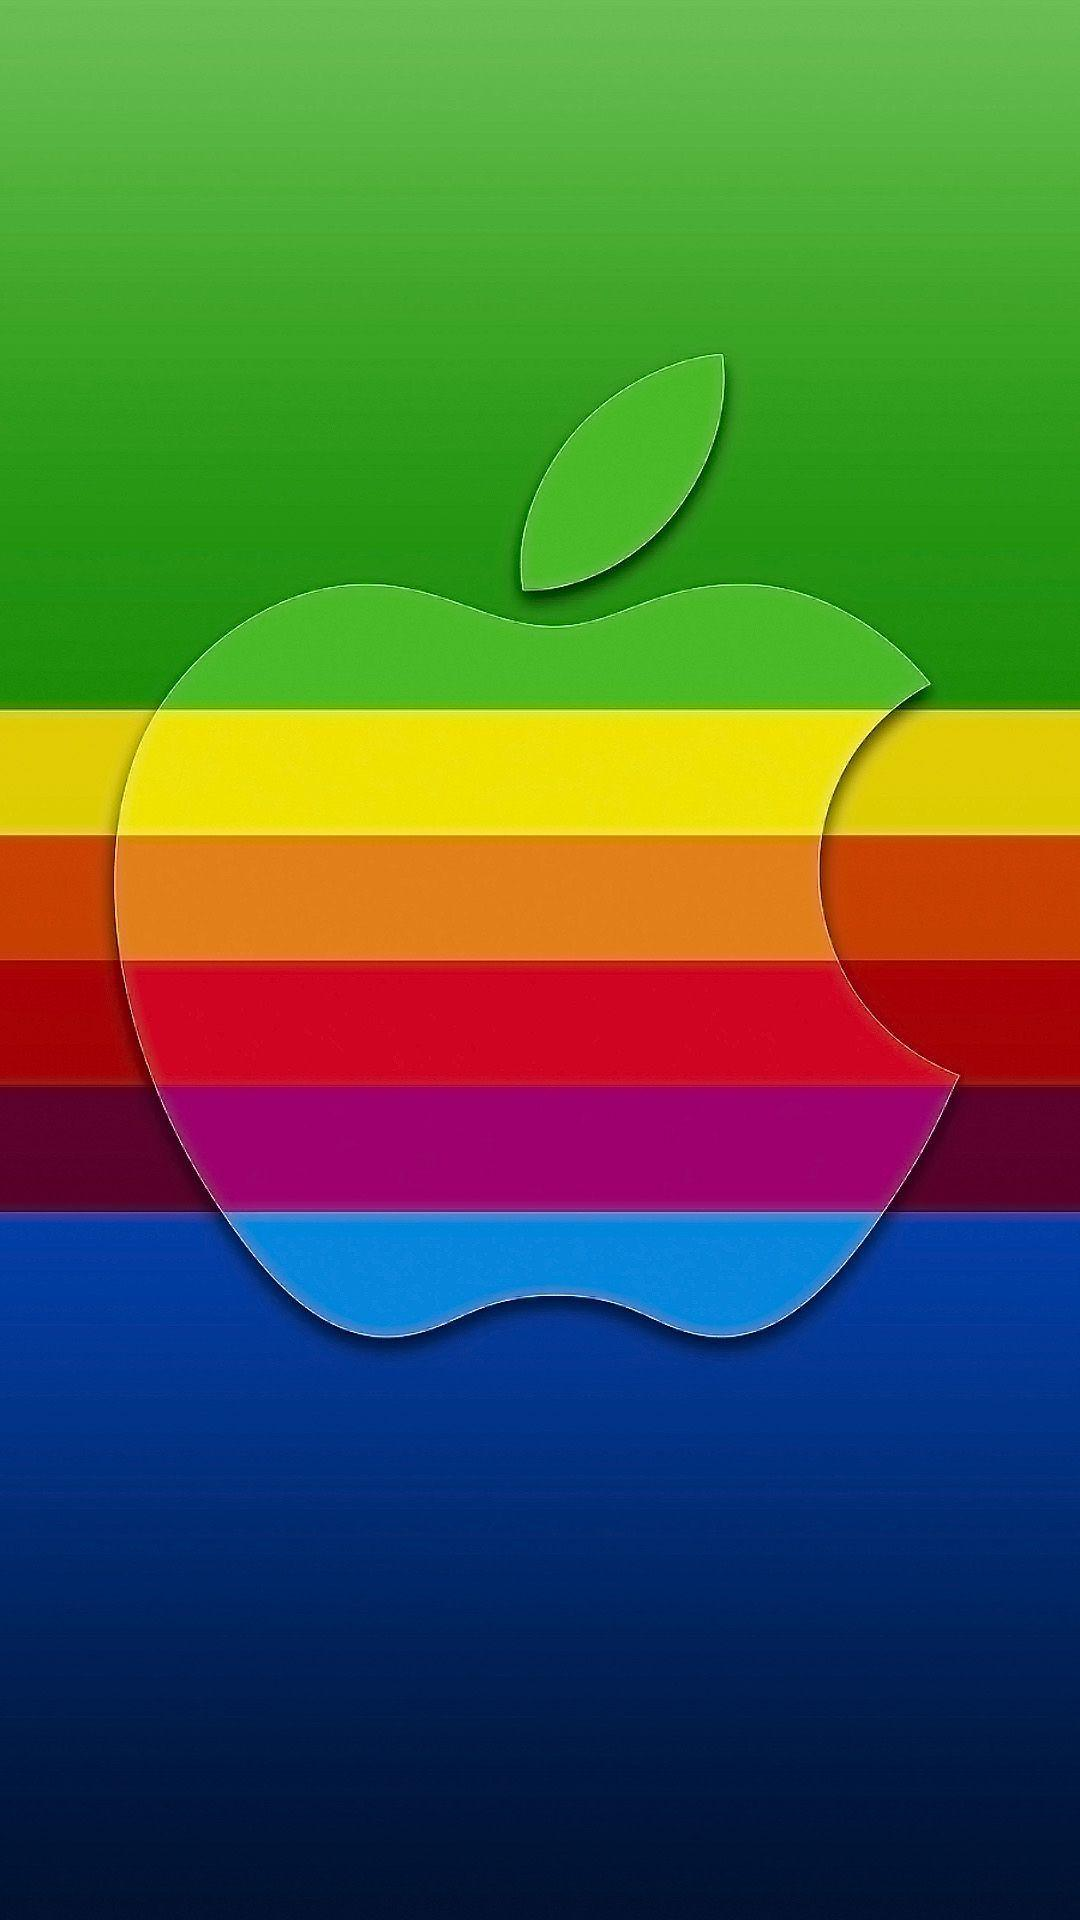 apple iphone backgrounds pixelstalknet